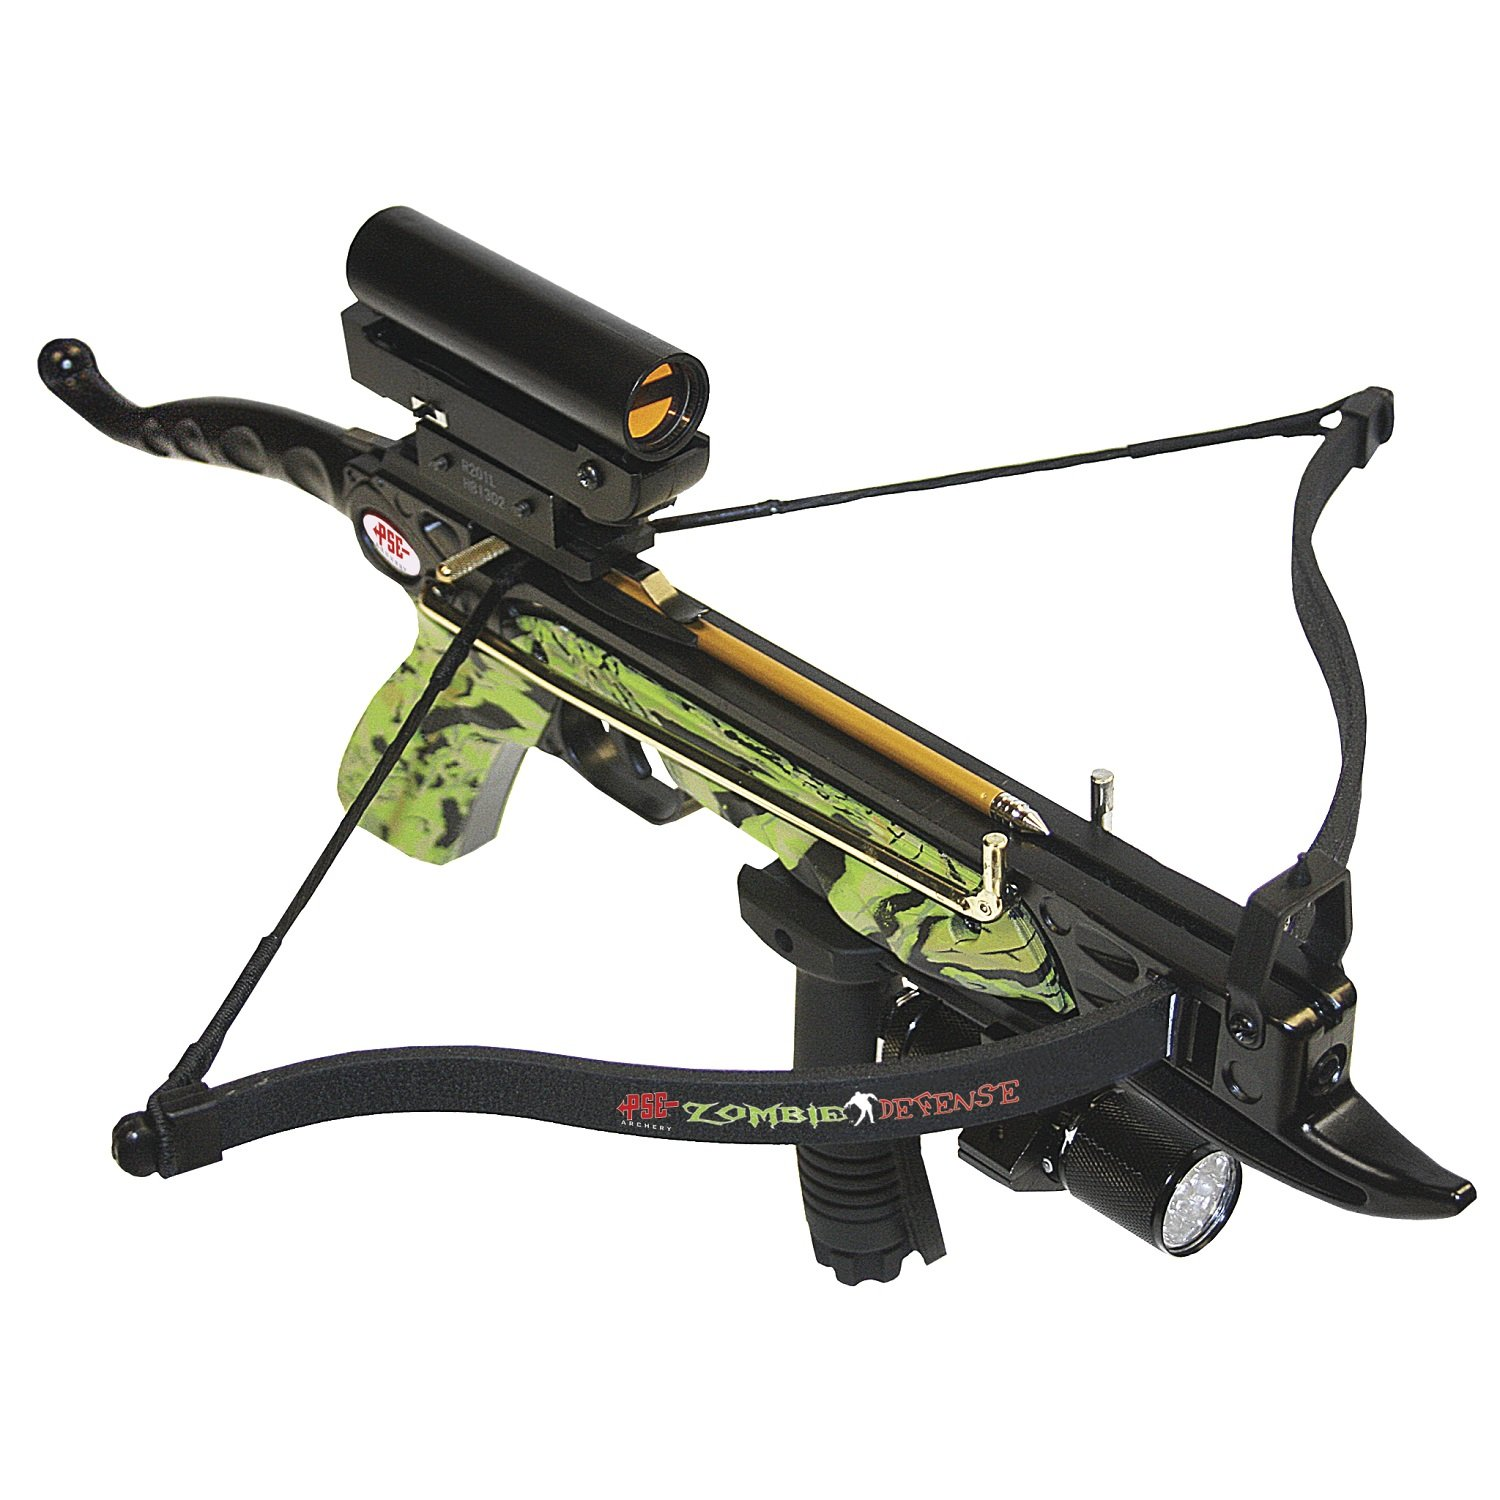 PSE Zombie Defense crossbow